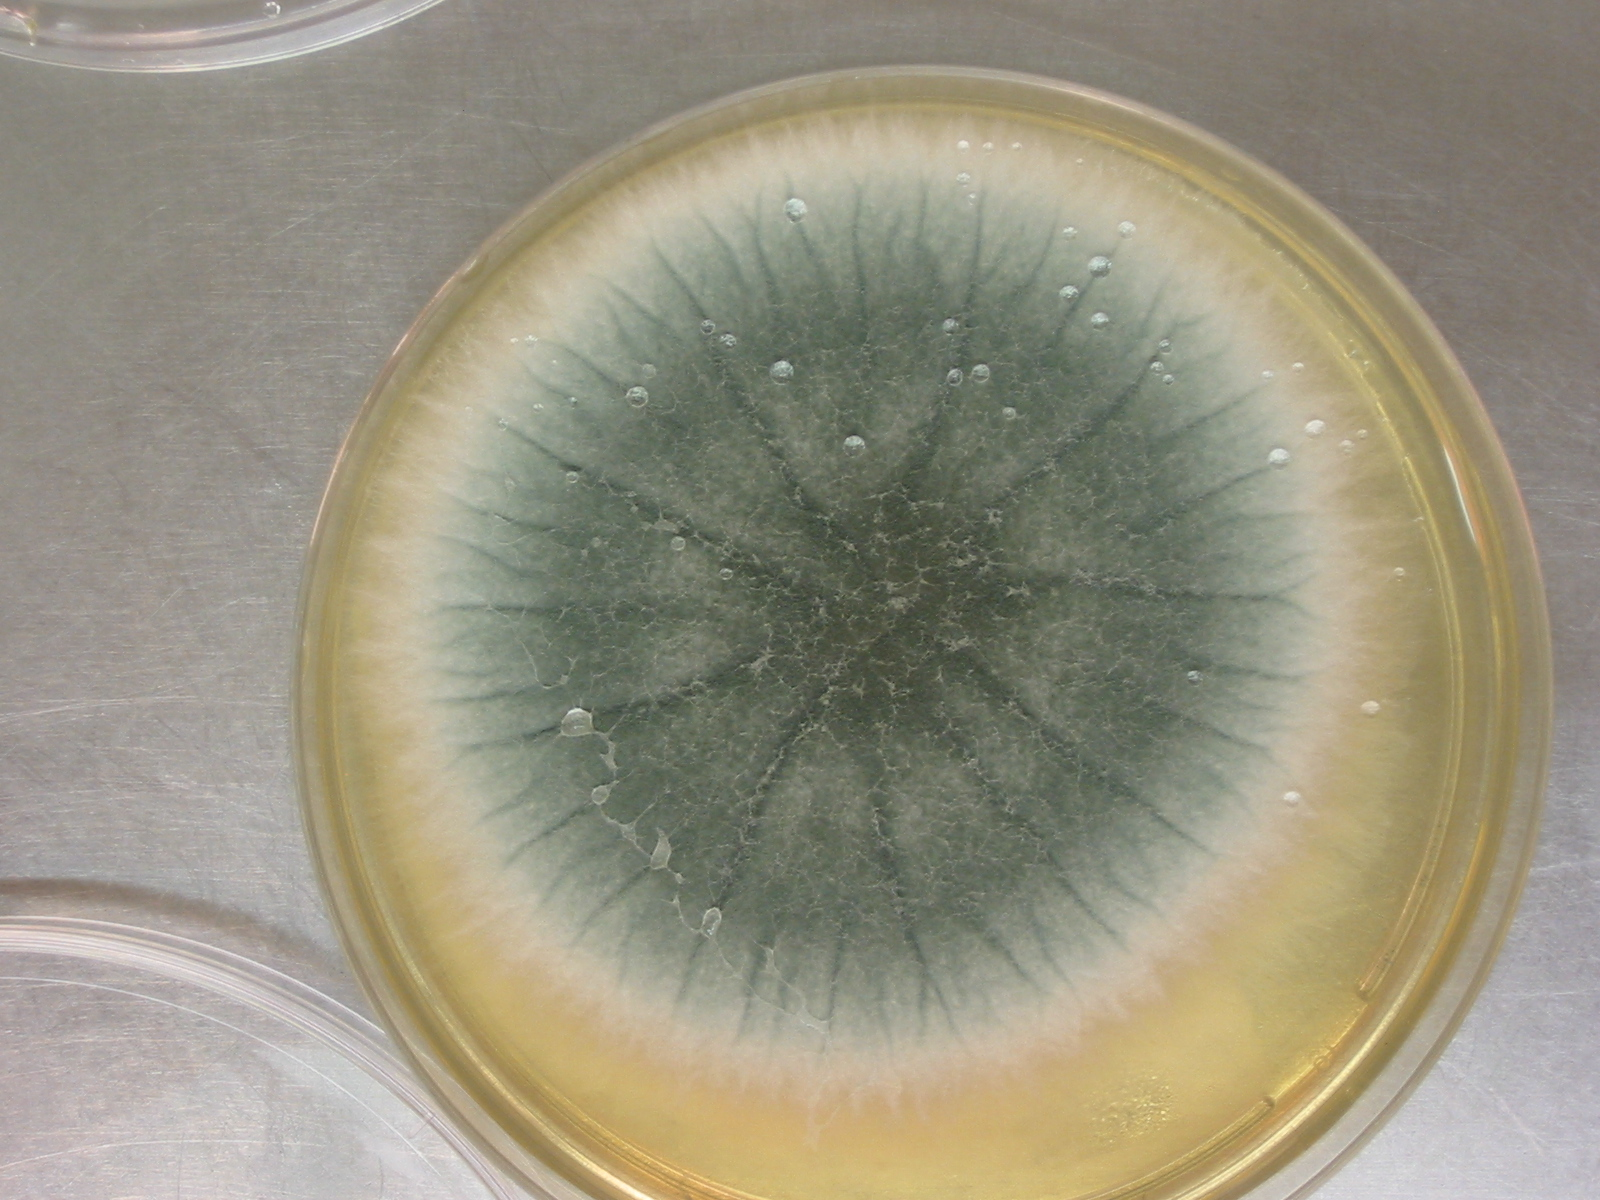 https://upload.wikimedia.org/wikipedia/commons/7/7a/070522-aspergillus_009.jpg